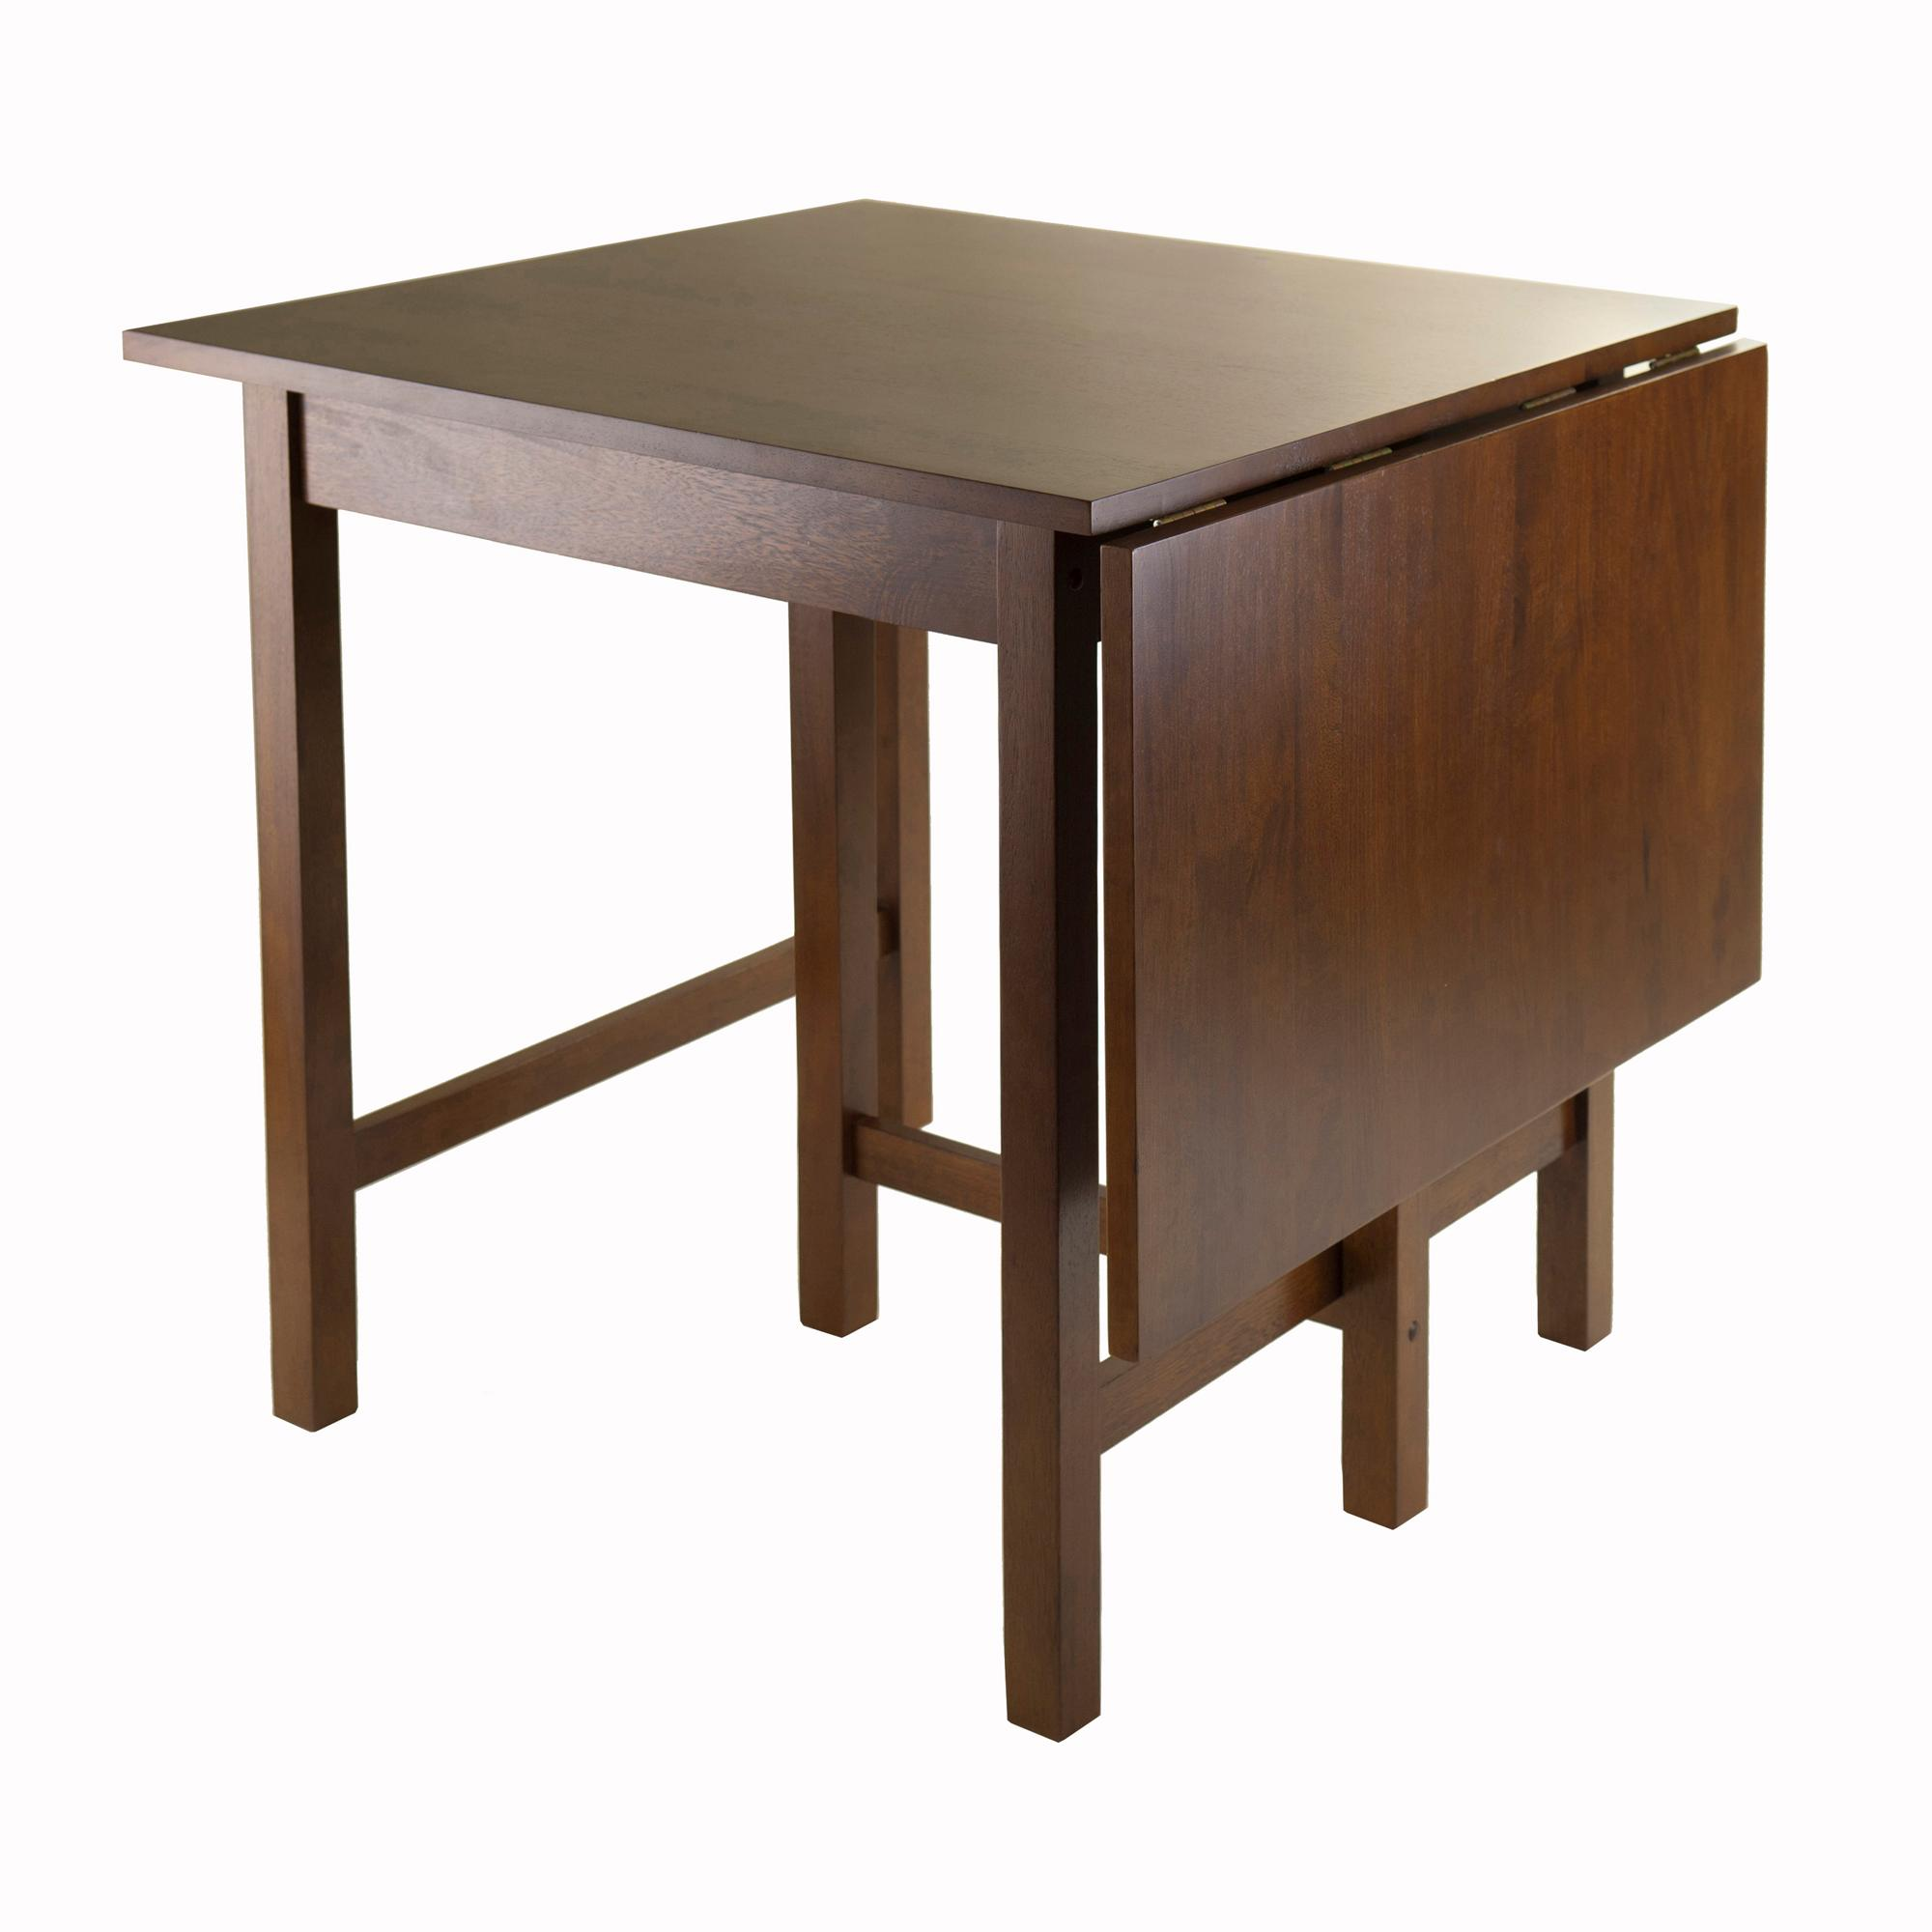 Winsome Wood Alamo, 94142, Double Drop Leaf, Round Table Mission, Walnut,  42 Inch Winsome Trading Inc.